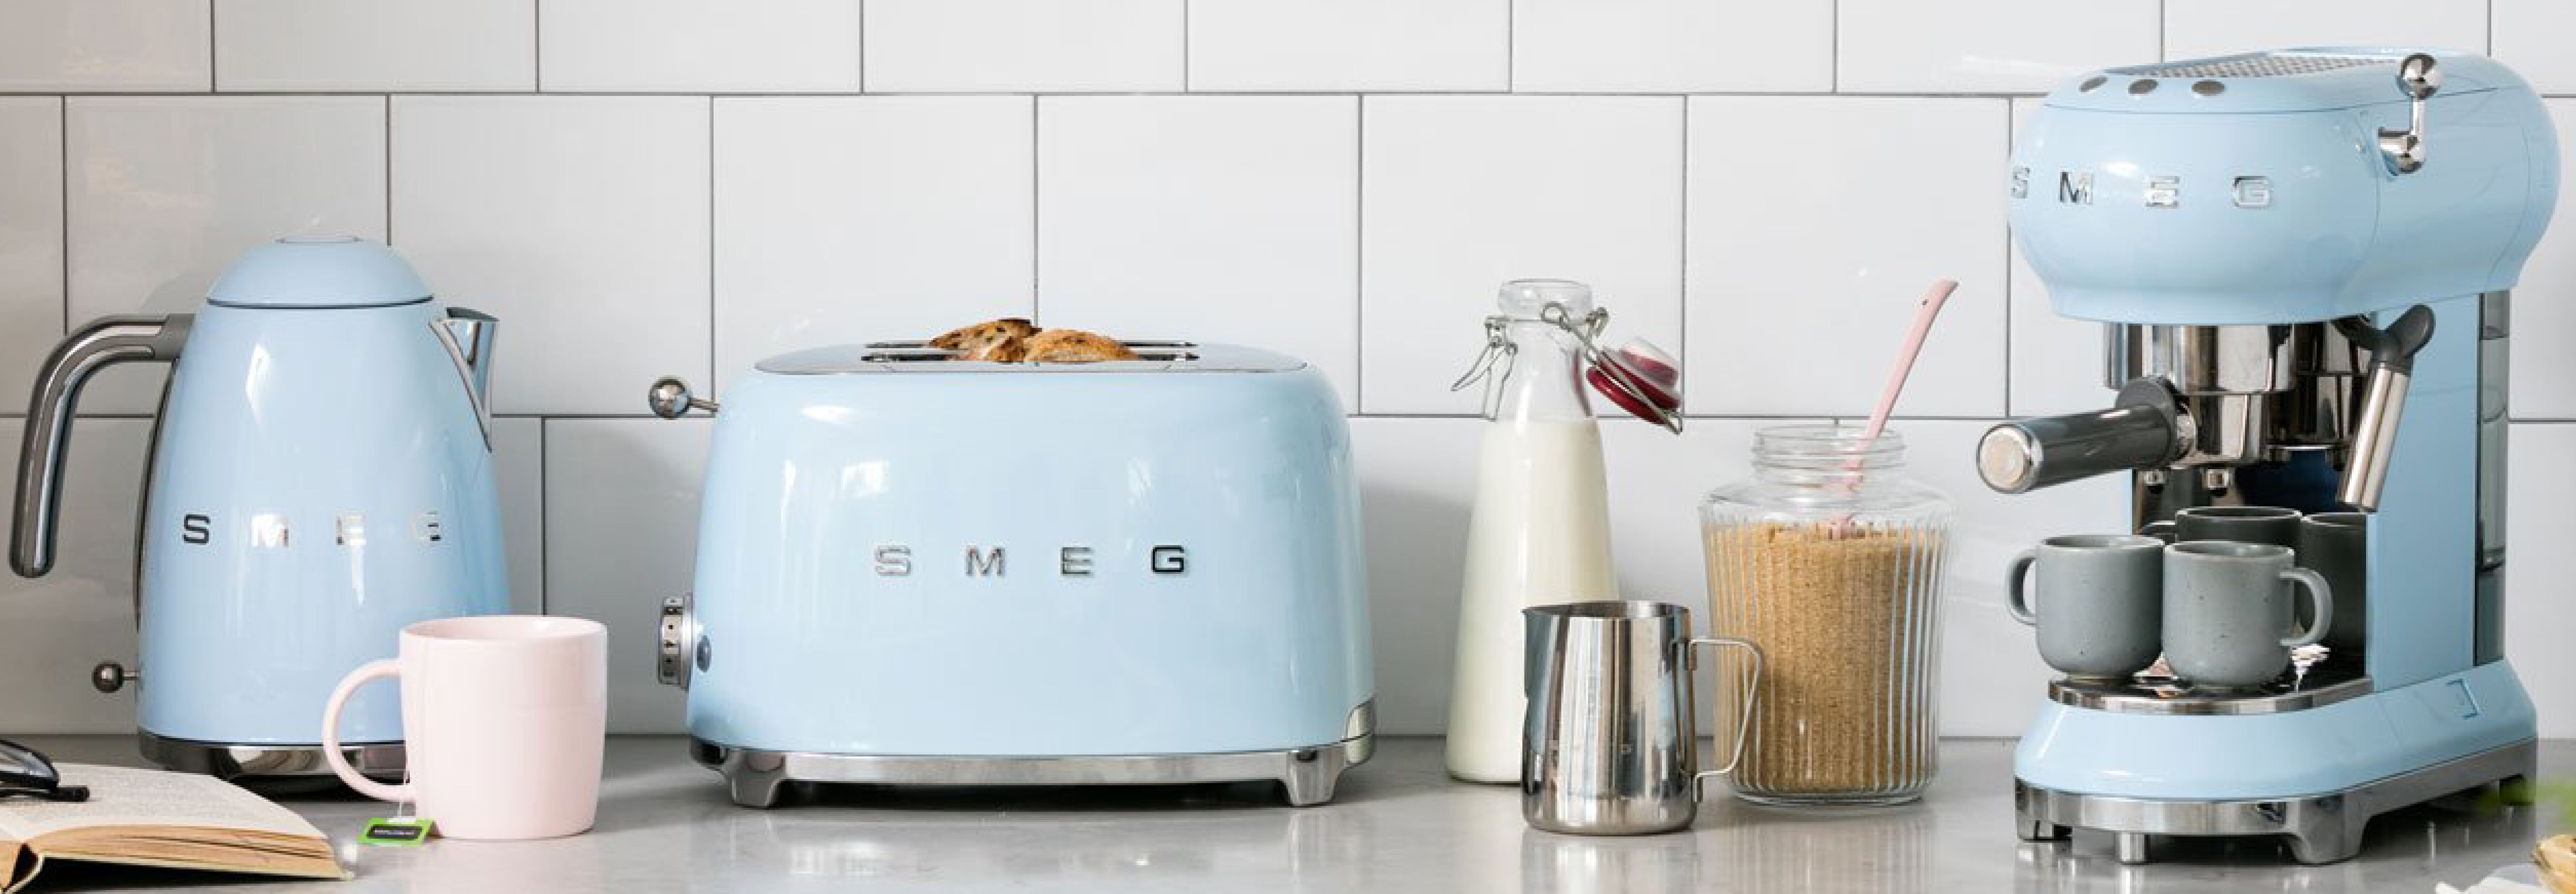 WIN A SMEG KITCHEN APPLIANCE PRIZE PACK